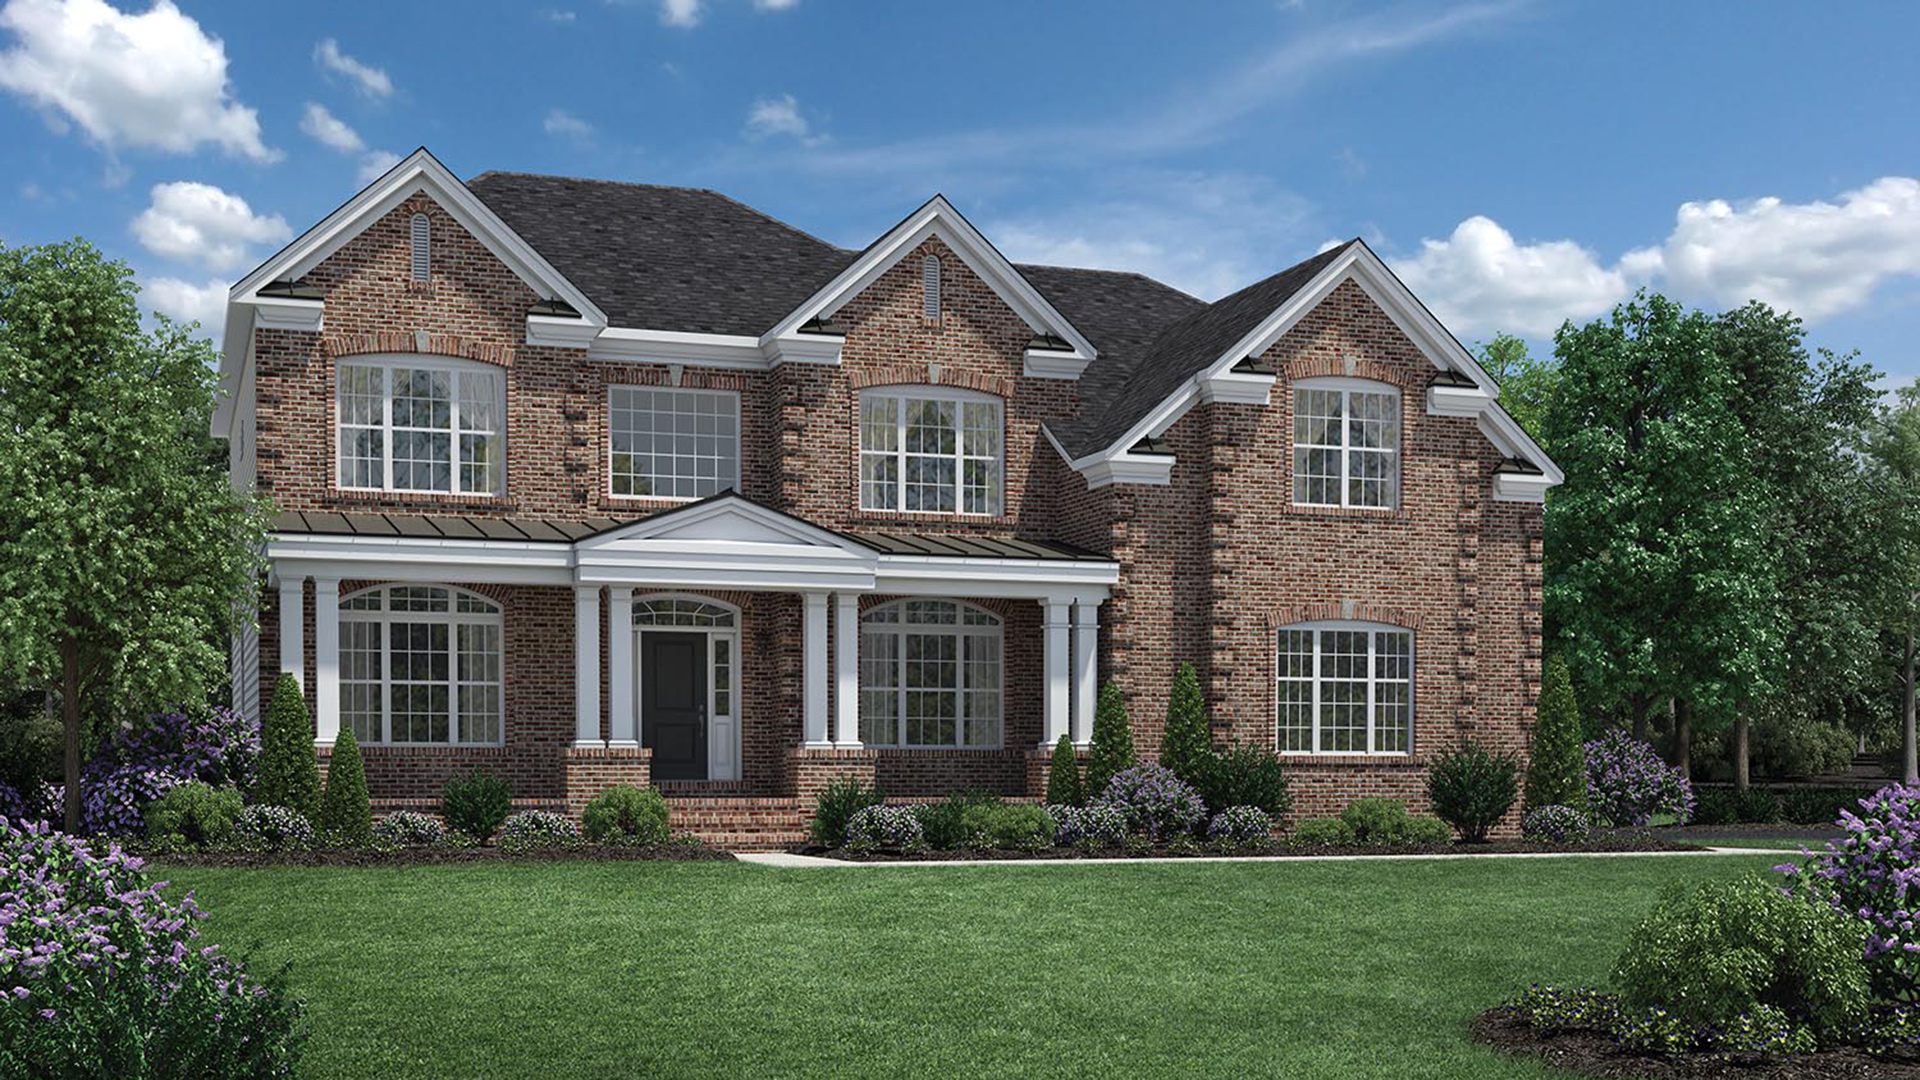 New Britain Walk Chalfont Pa Homes For Sale